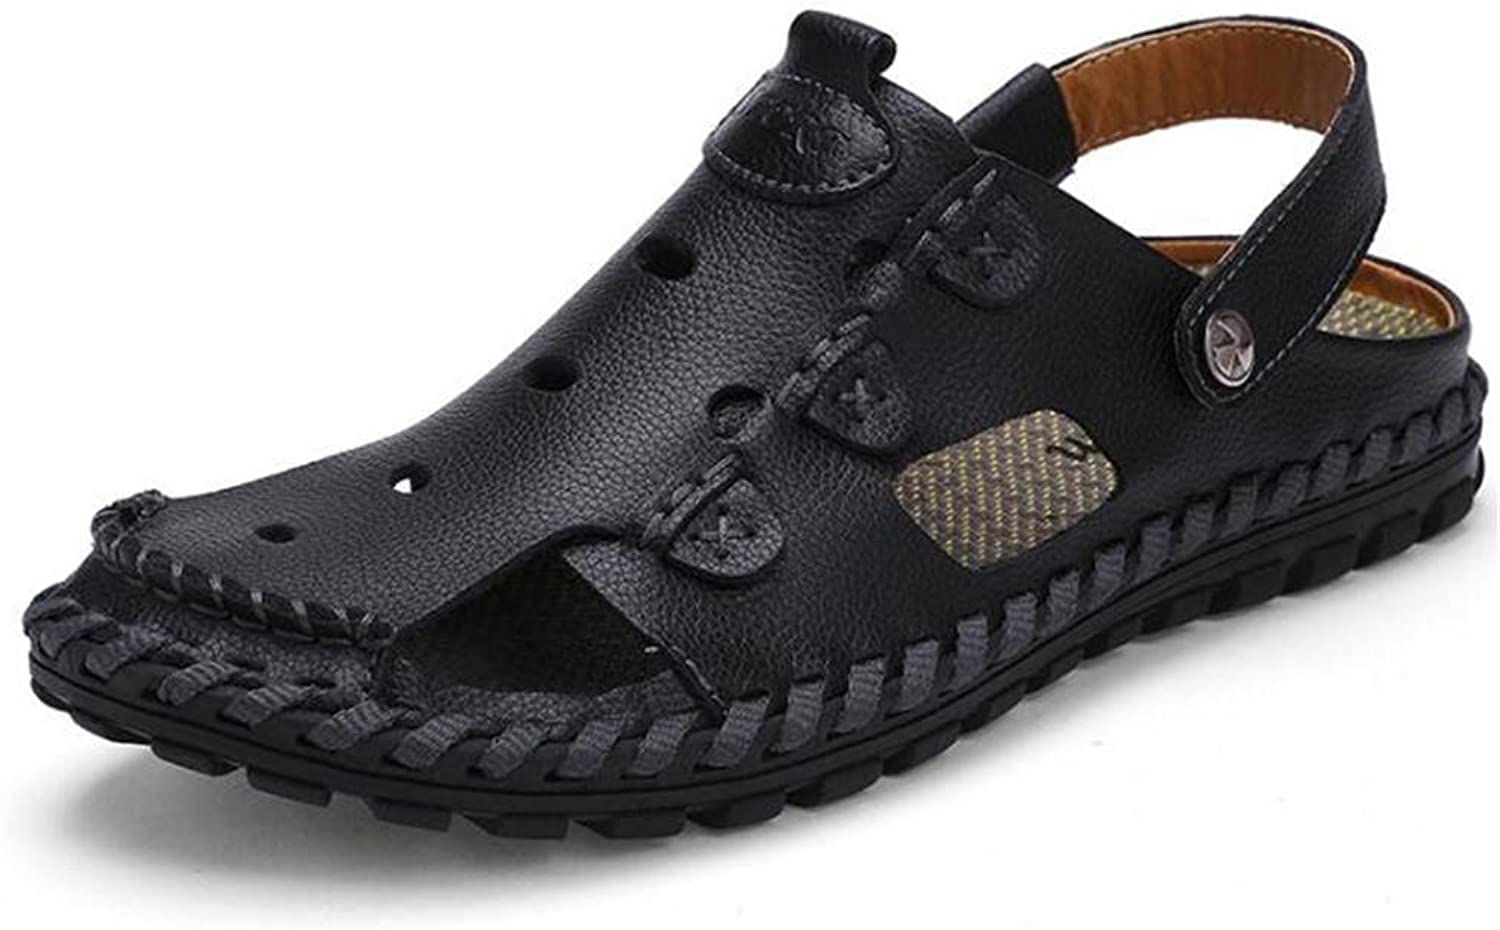 Men shoes Genuine Leather Sandals Beach Summer Closed Toe Pull on Slipper Breathable Slides Non-Slip Size 38 To 43